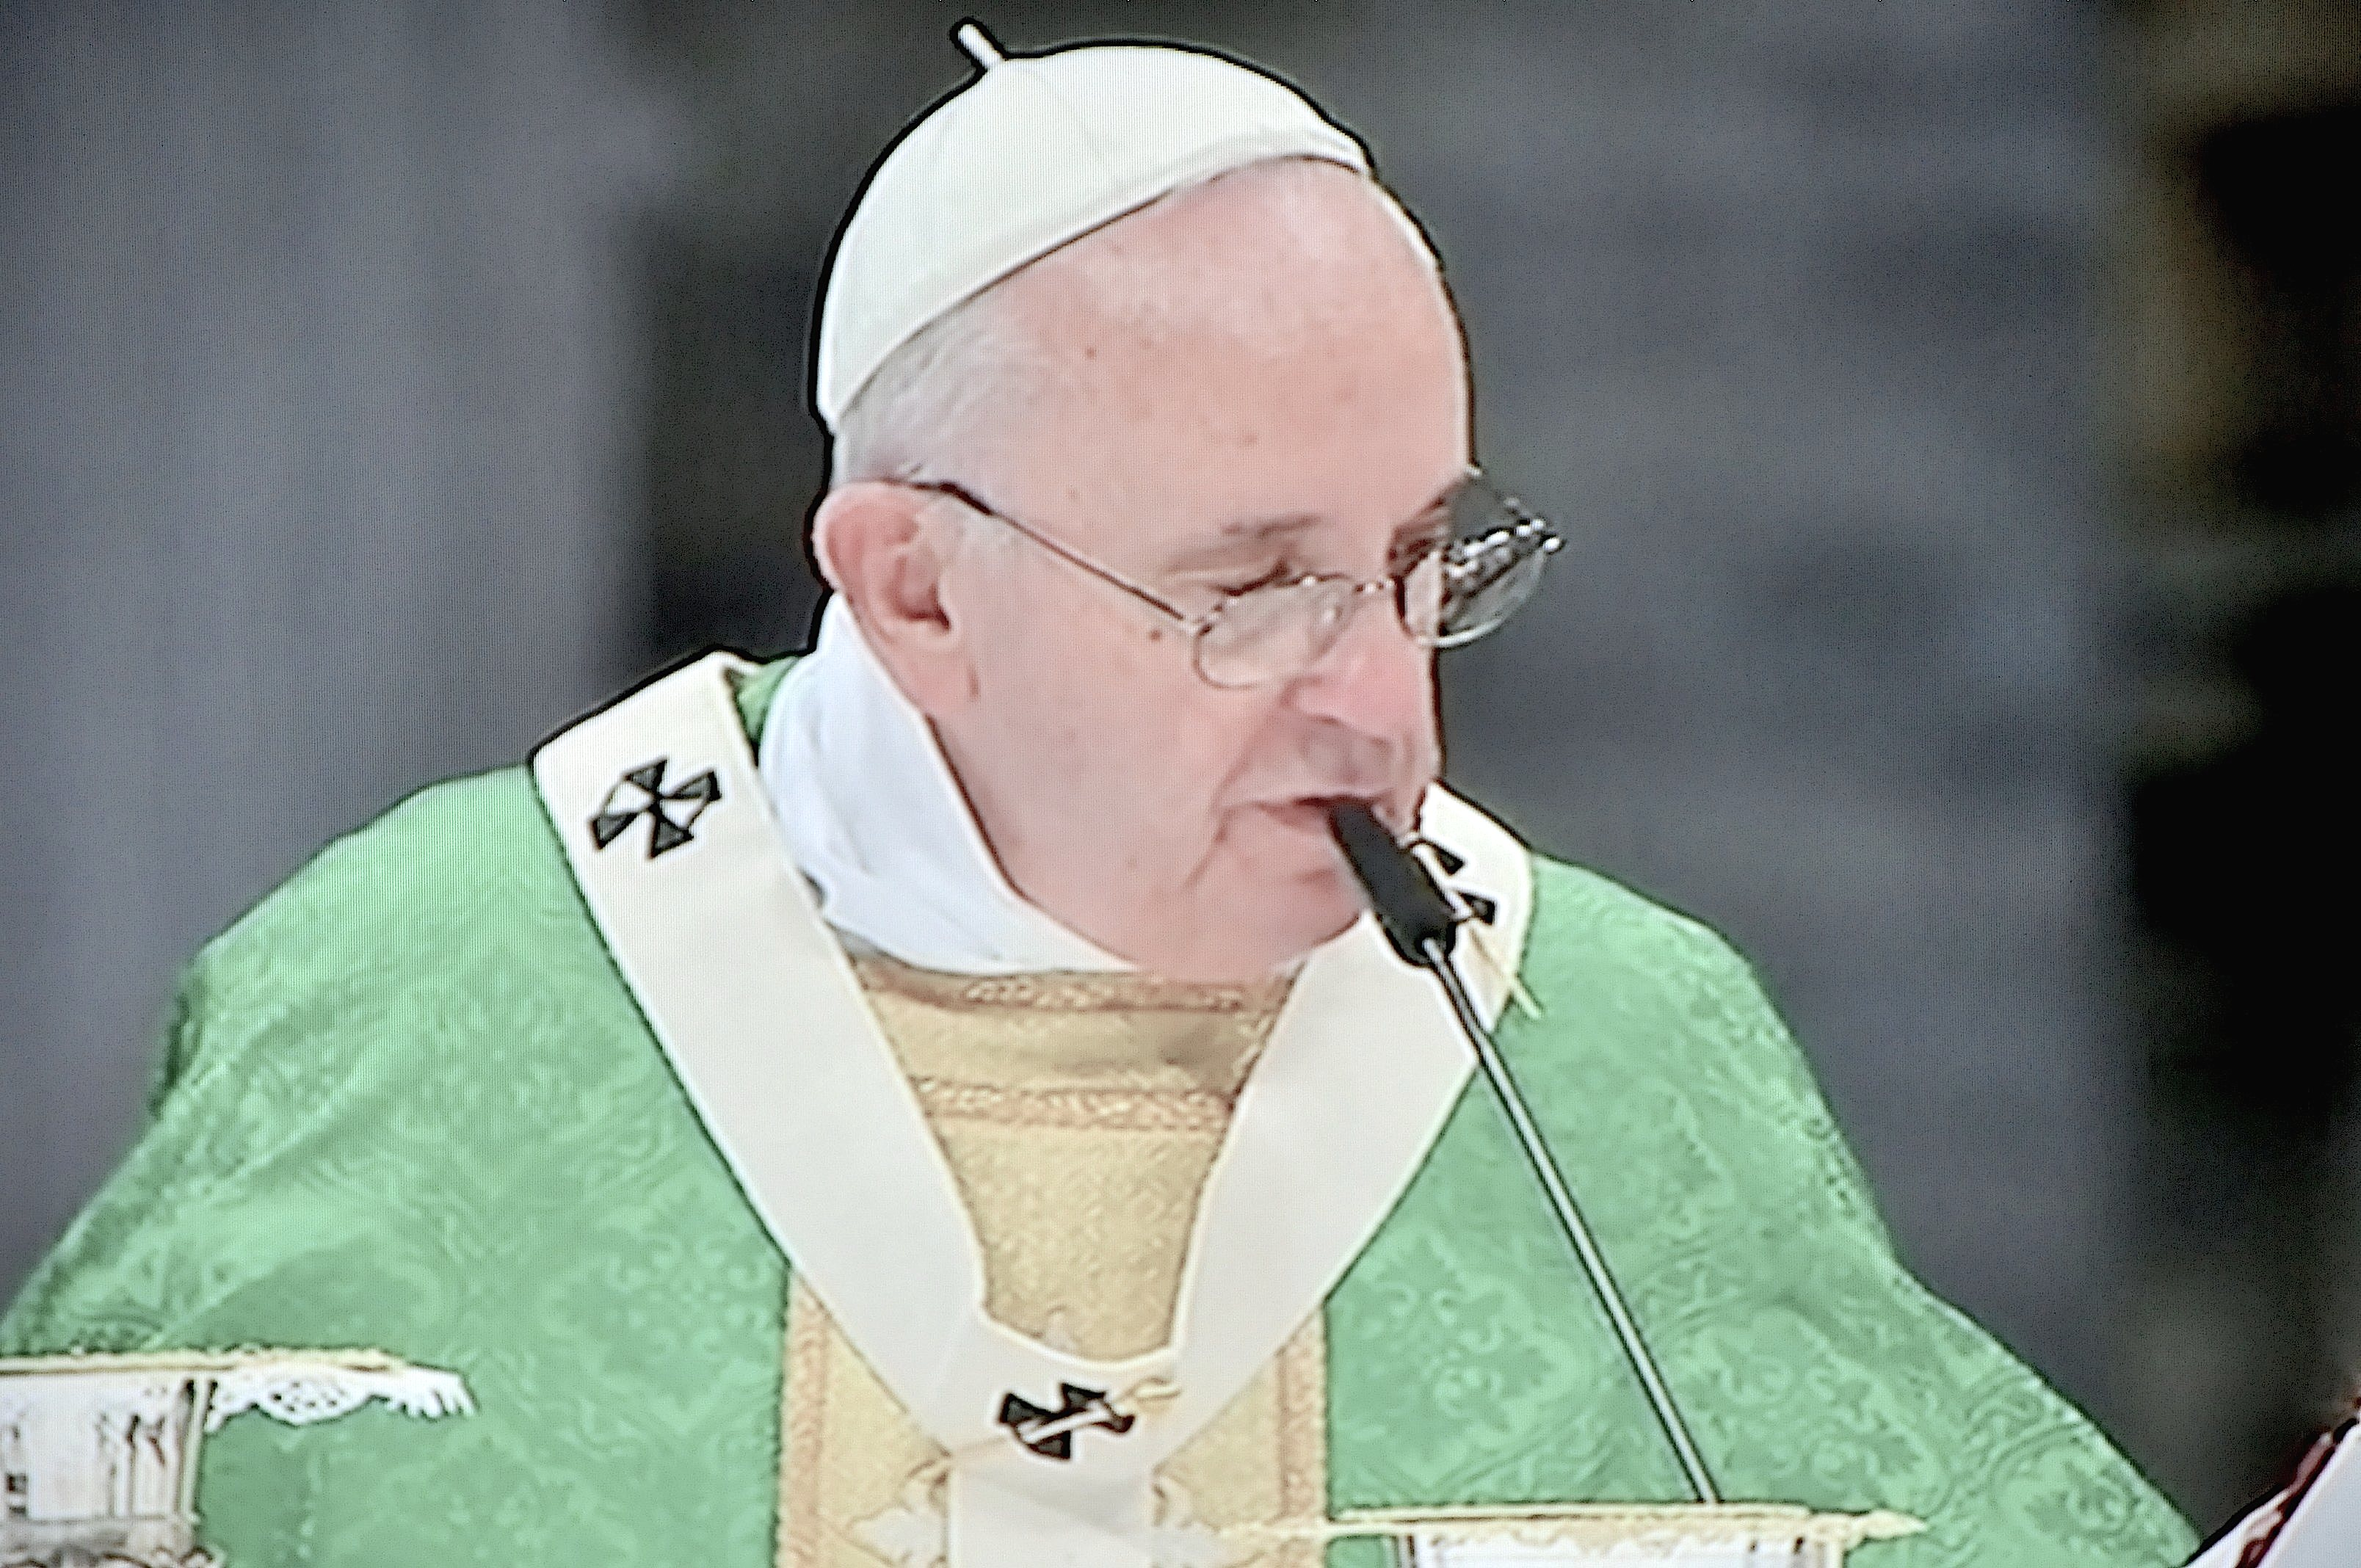 Pope Francis during the Mass for the Opening of the Synod of Bshops